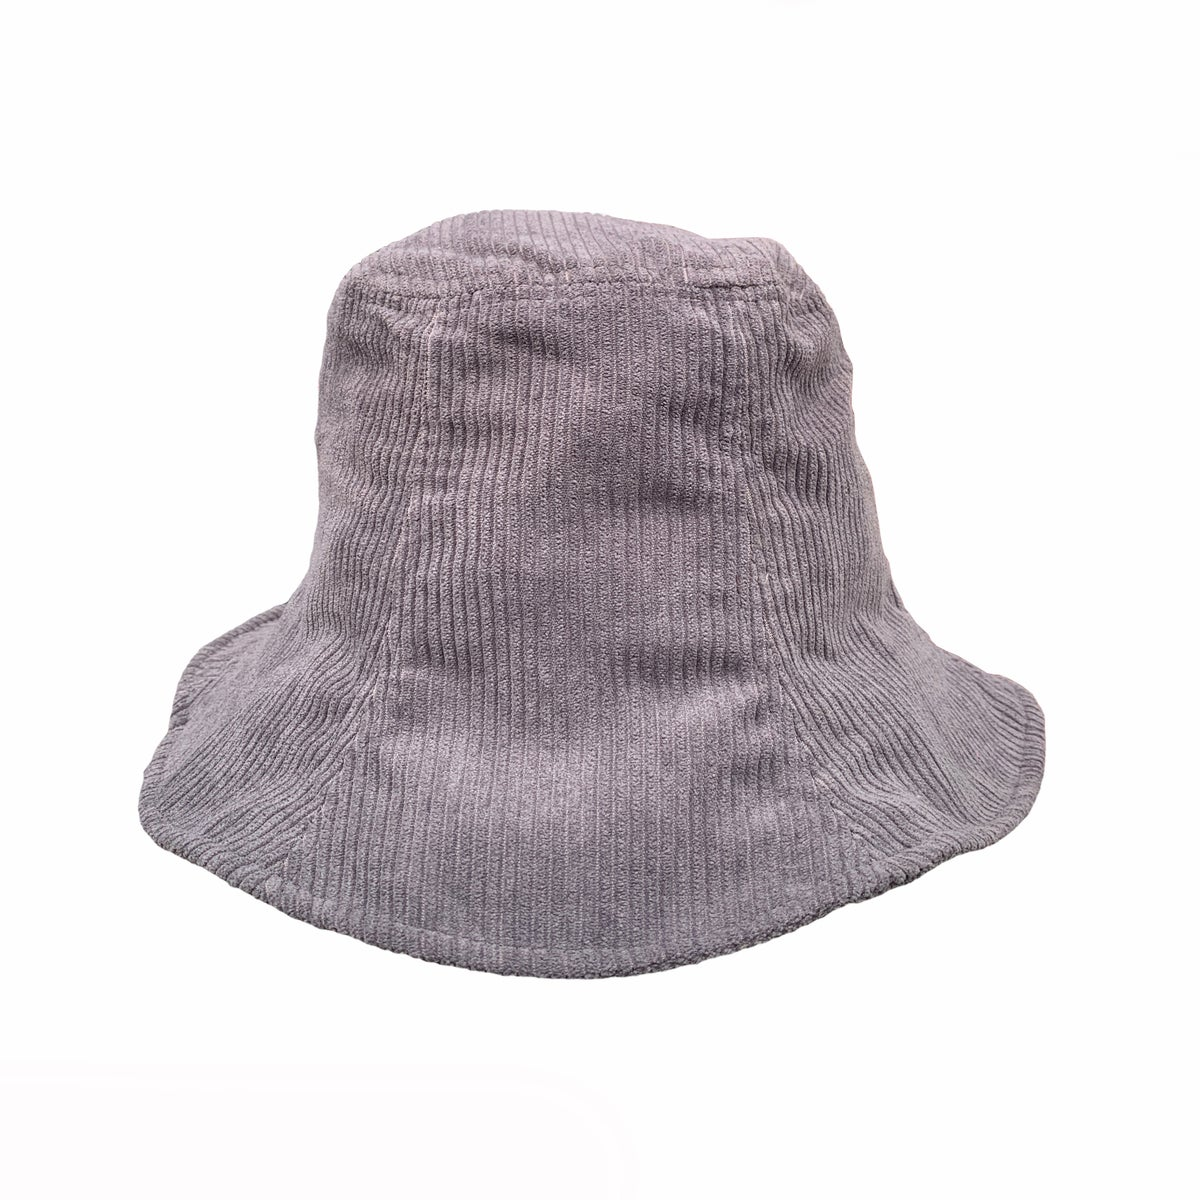 Image of Corduroy Bucket Hat. Grey